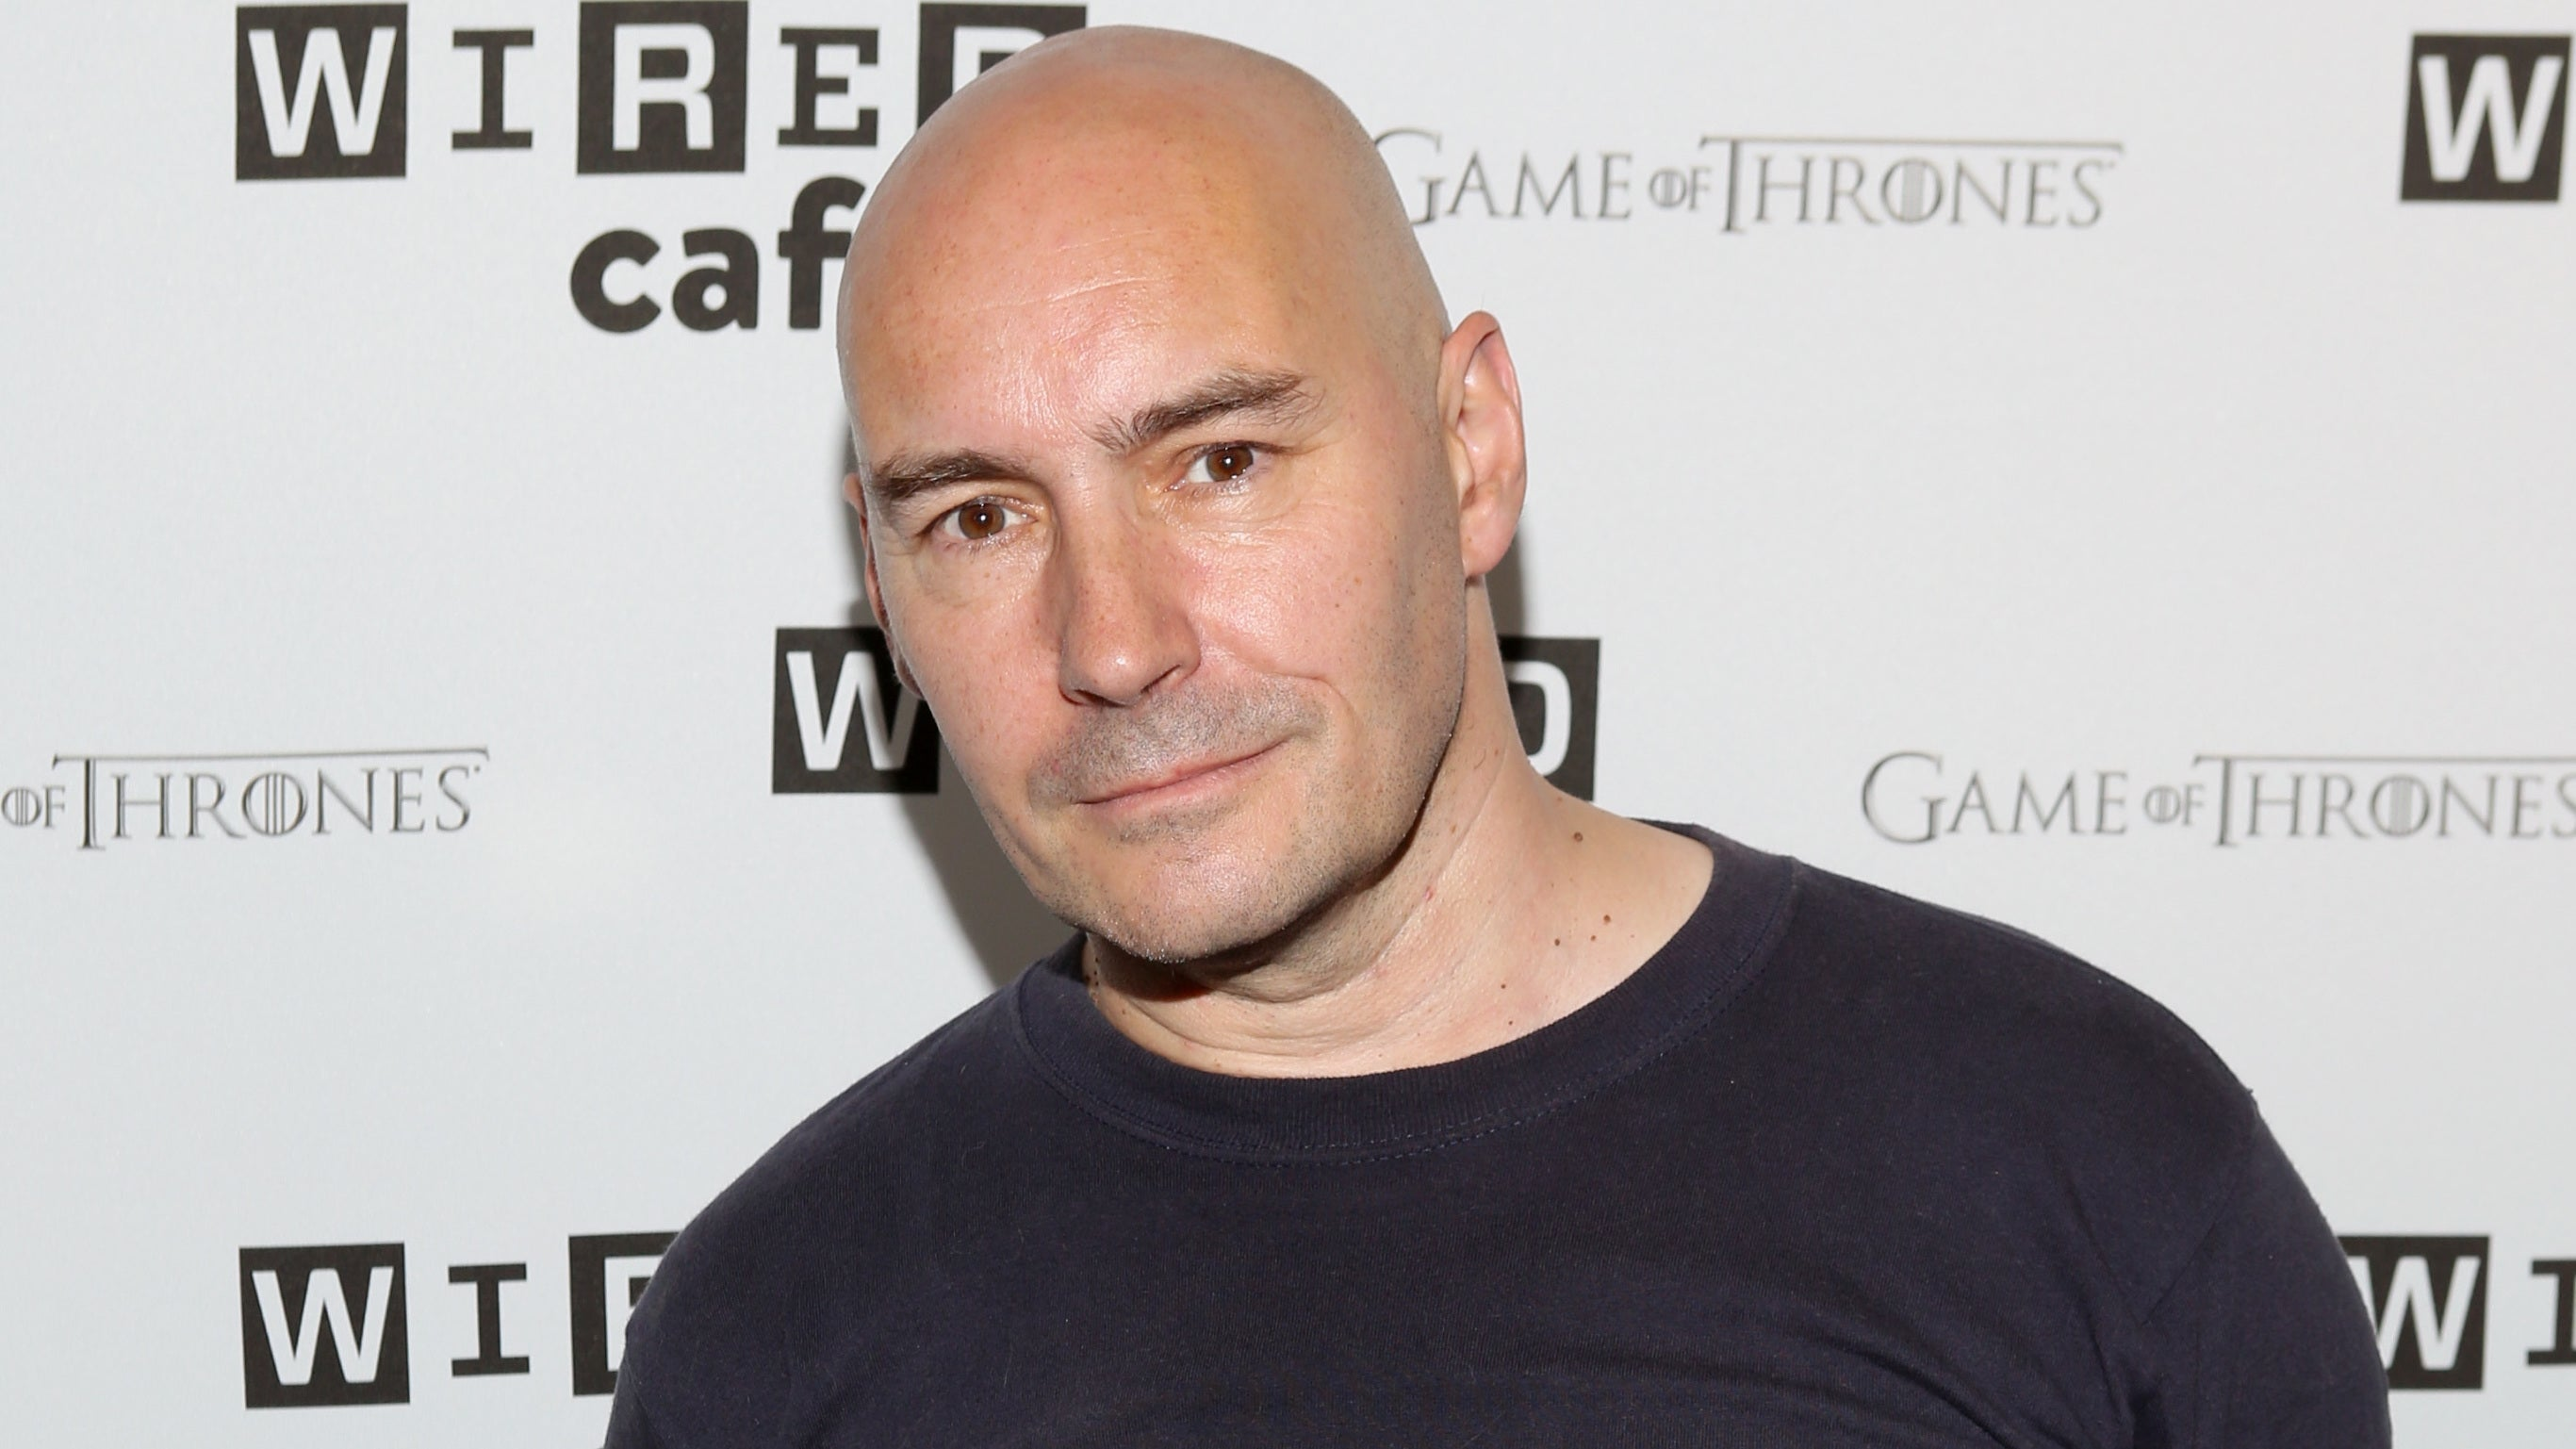 Exclusive: Grant Morrison Opens Up About Feuding With Alan Moore And Why He Still Doesn't Like Watchmen